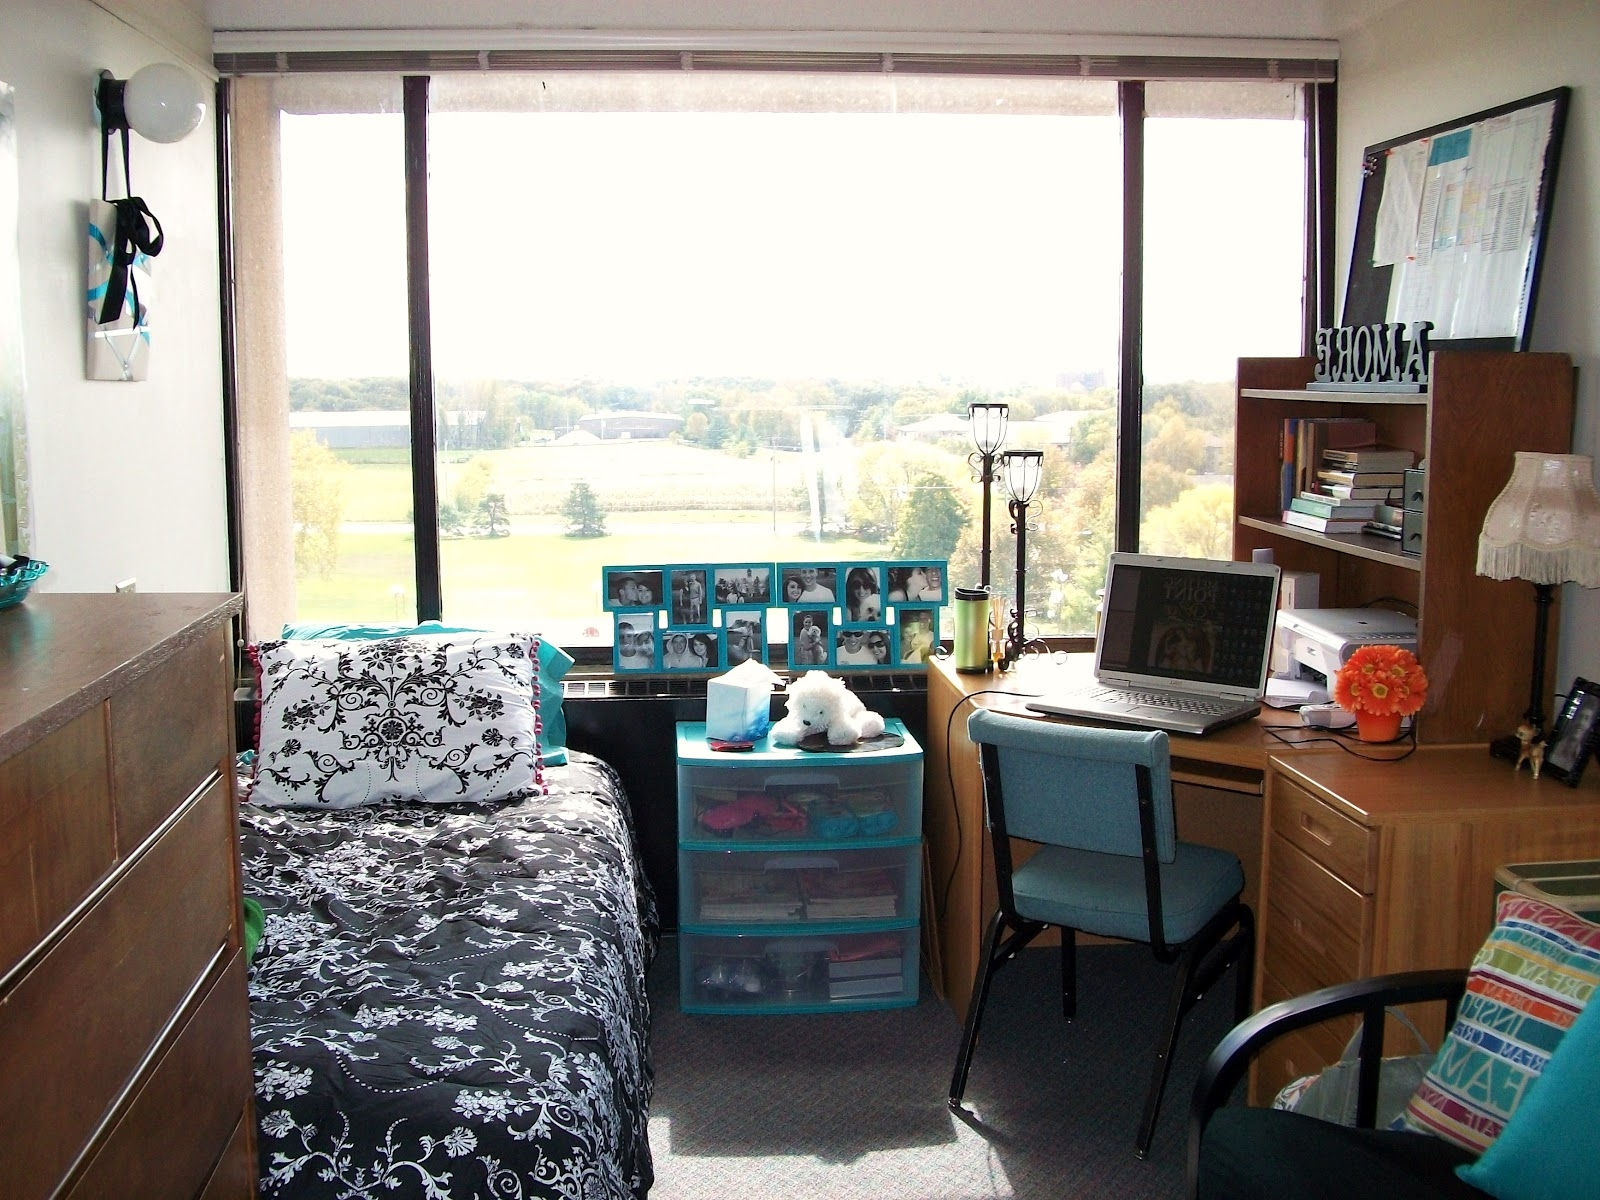 Moving To A New Dorm Here Are Some Of The Best Dorm Room Ideas Artmakehome